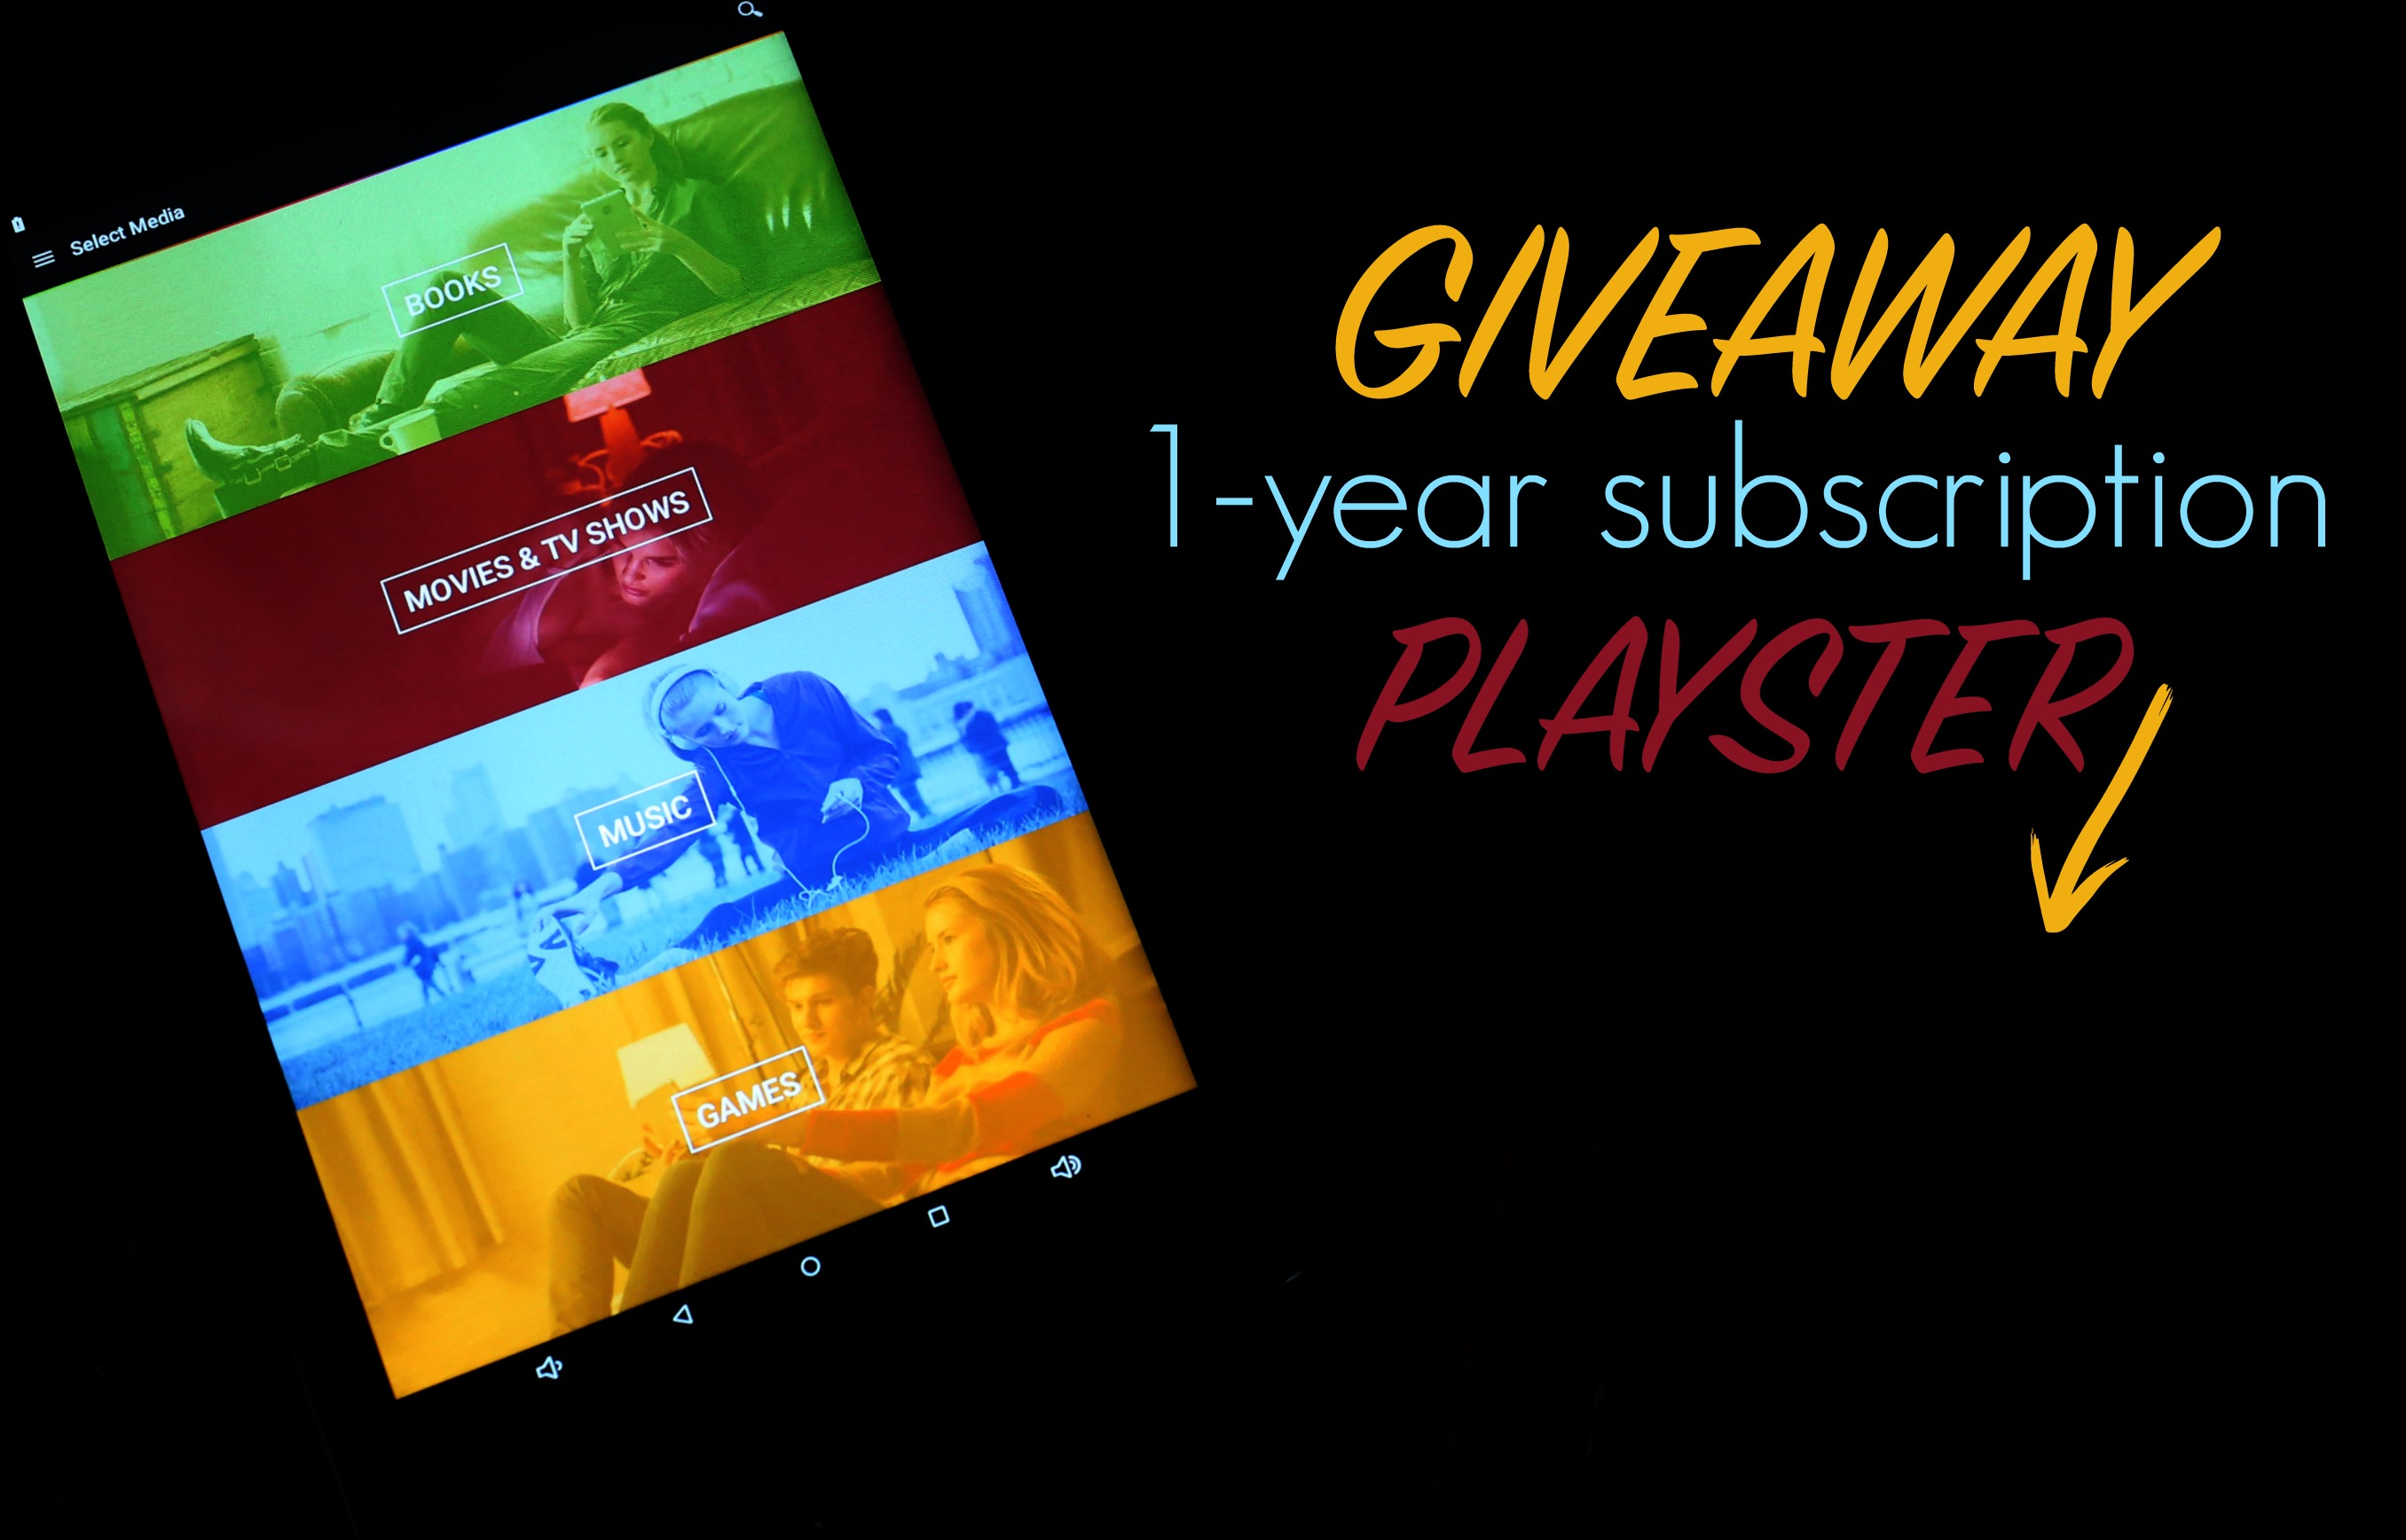 Playster Giveaway